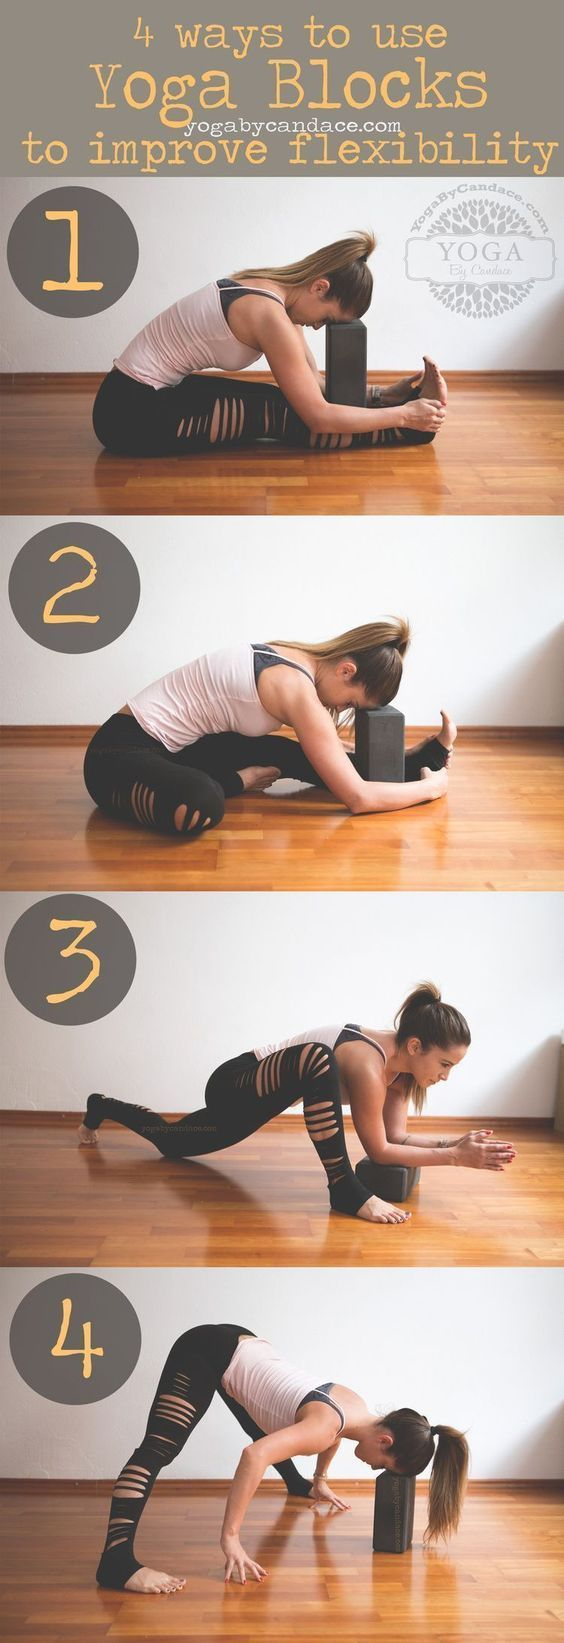 Yoga Blocks For Flexibility